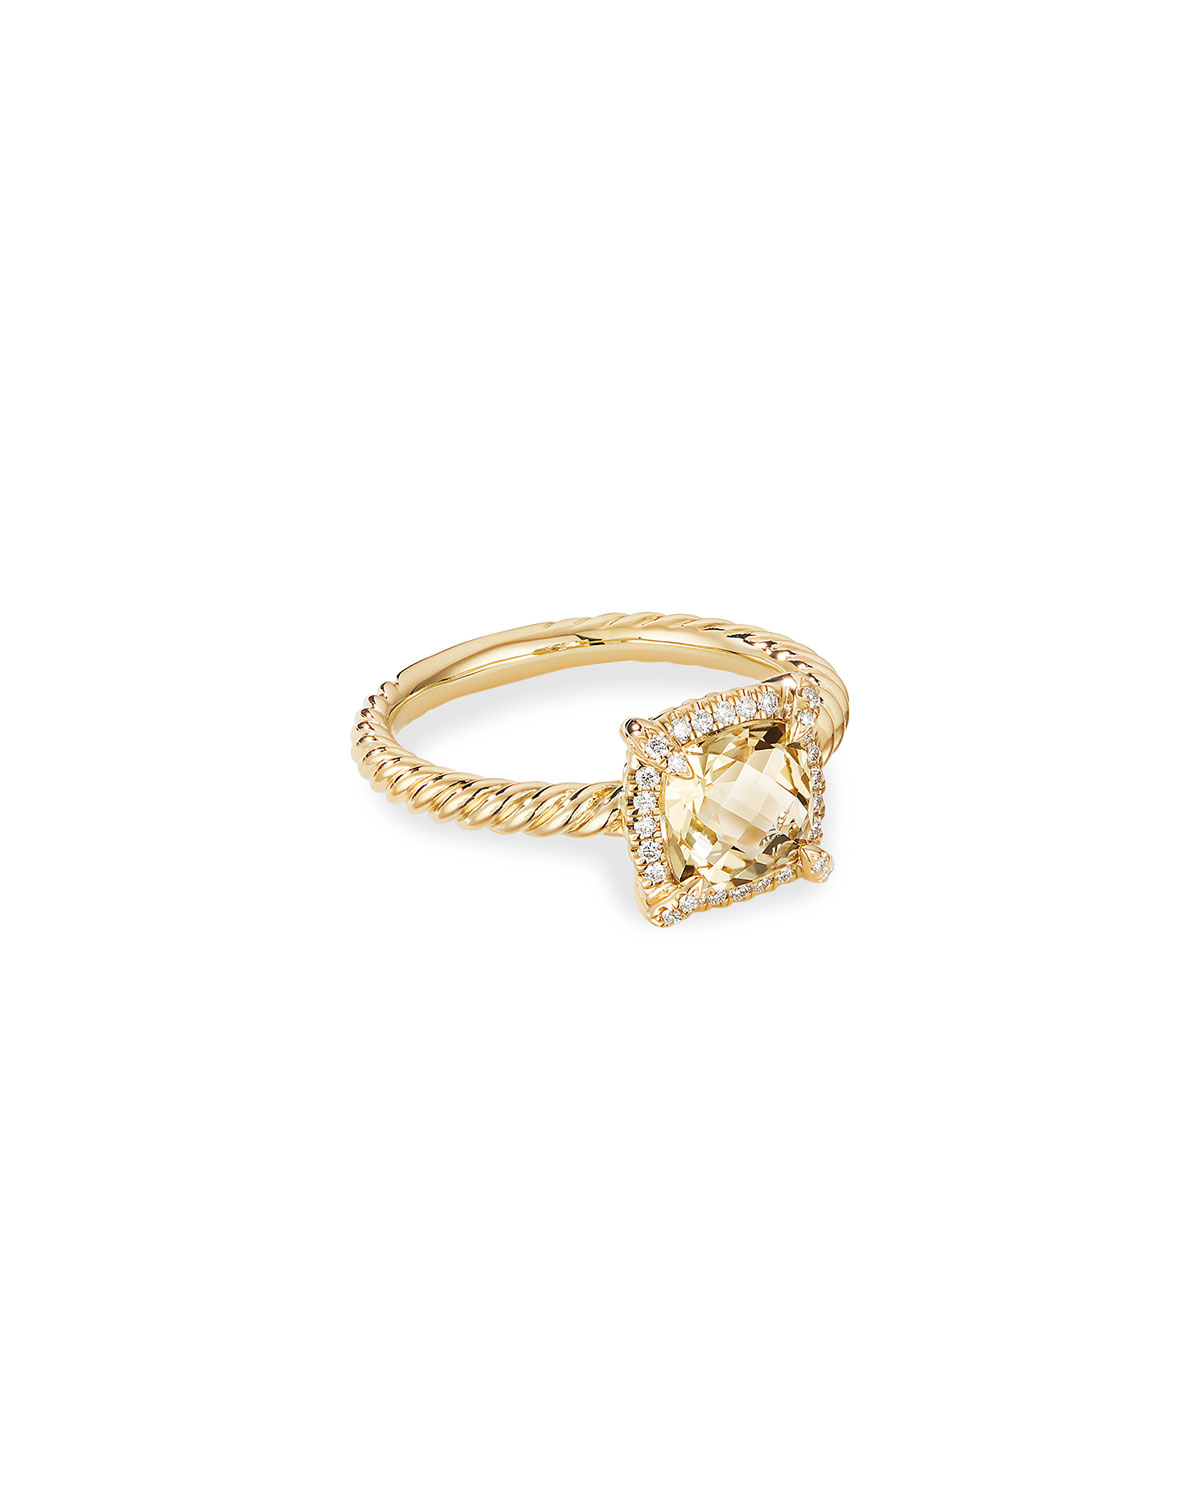 David Yurman Petite Chatelaine Pave Bezel Ring in 18K Gold with Champagne Citrine, Size 7